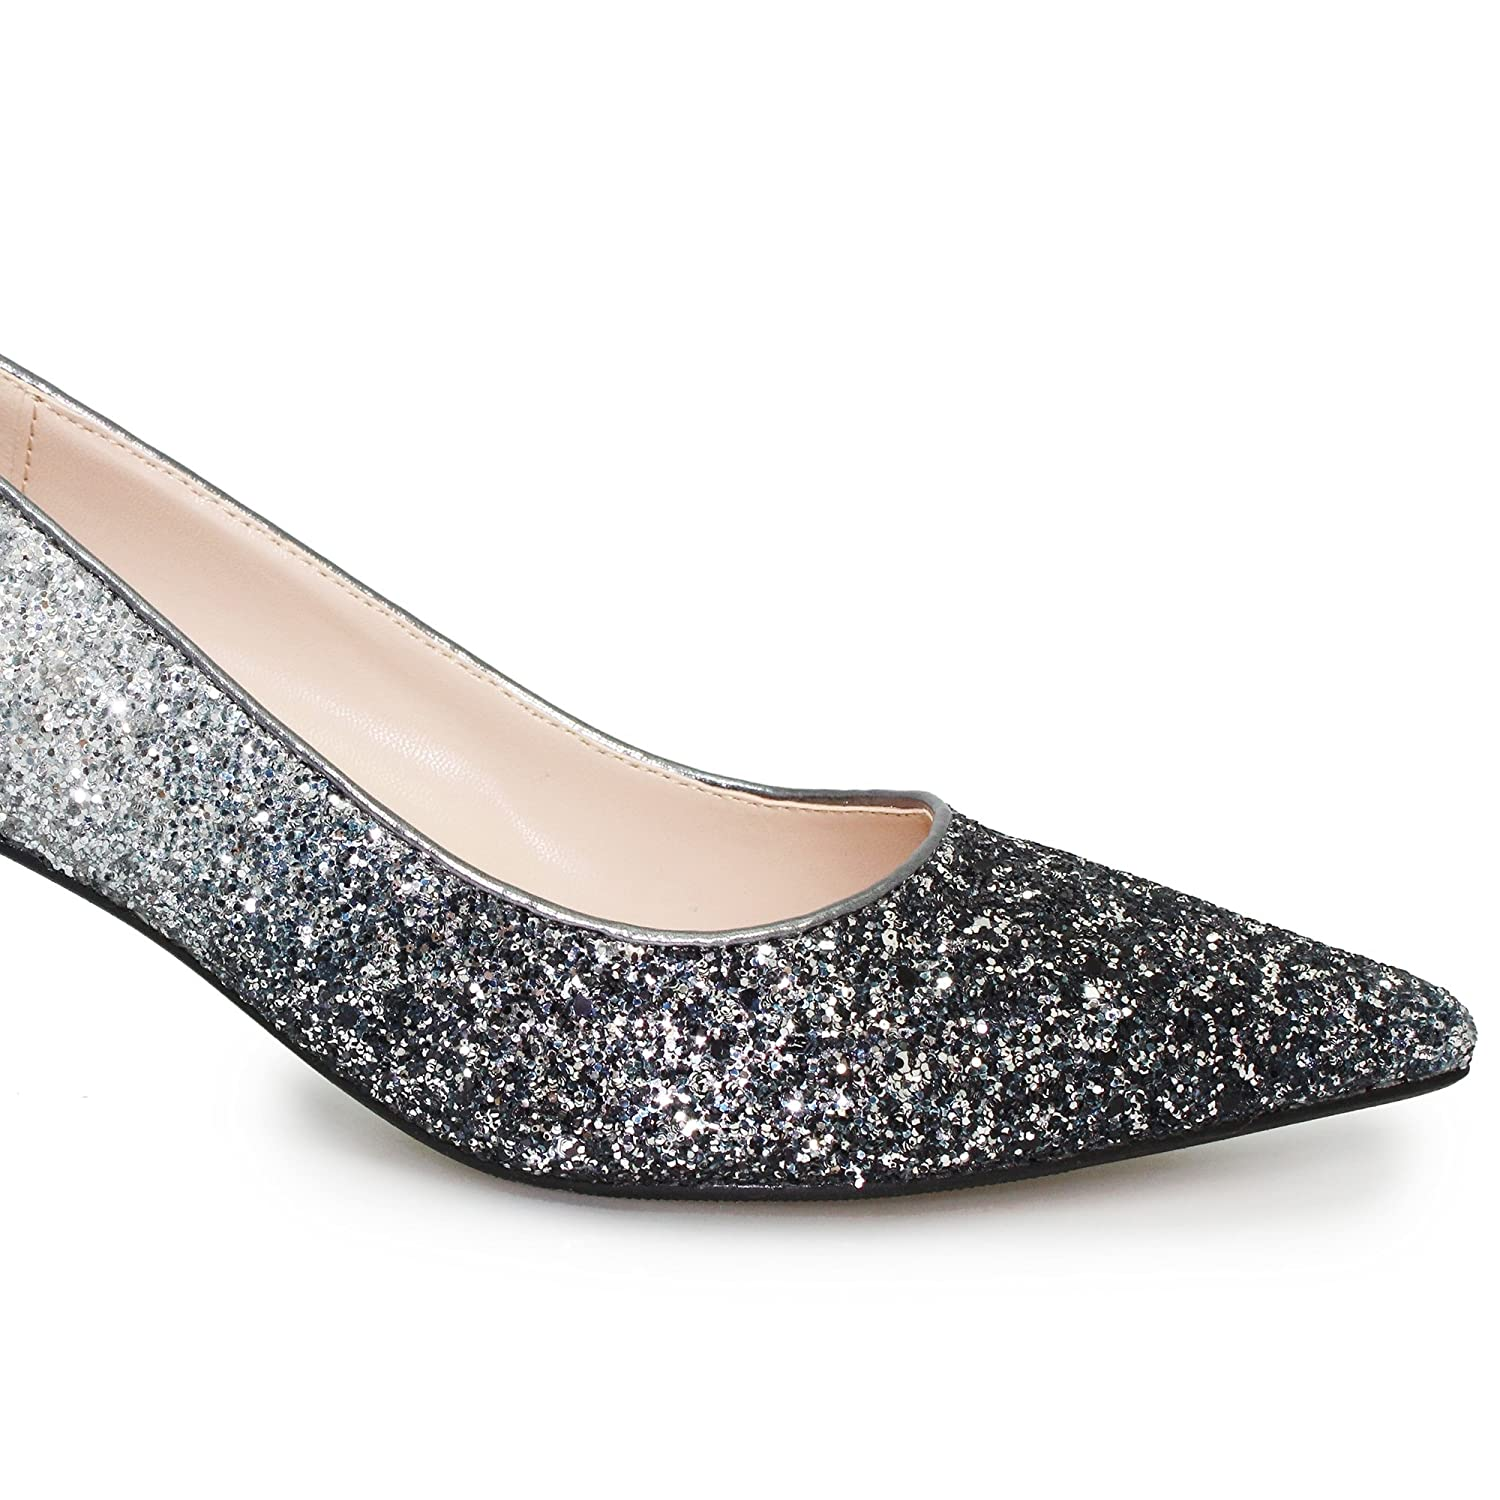 Lunar Women's Dash Glitter Court Shoe With Low Heel In Grey Pewter Two Tone Sizes 3 4 5 6 7 8 B078KGH2DV